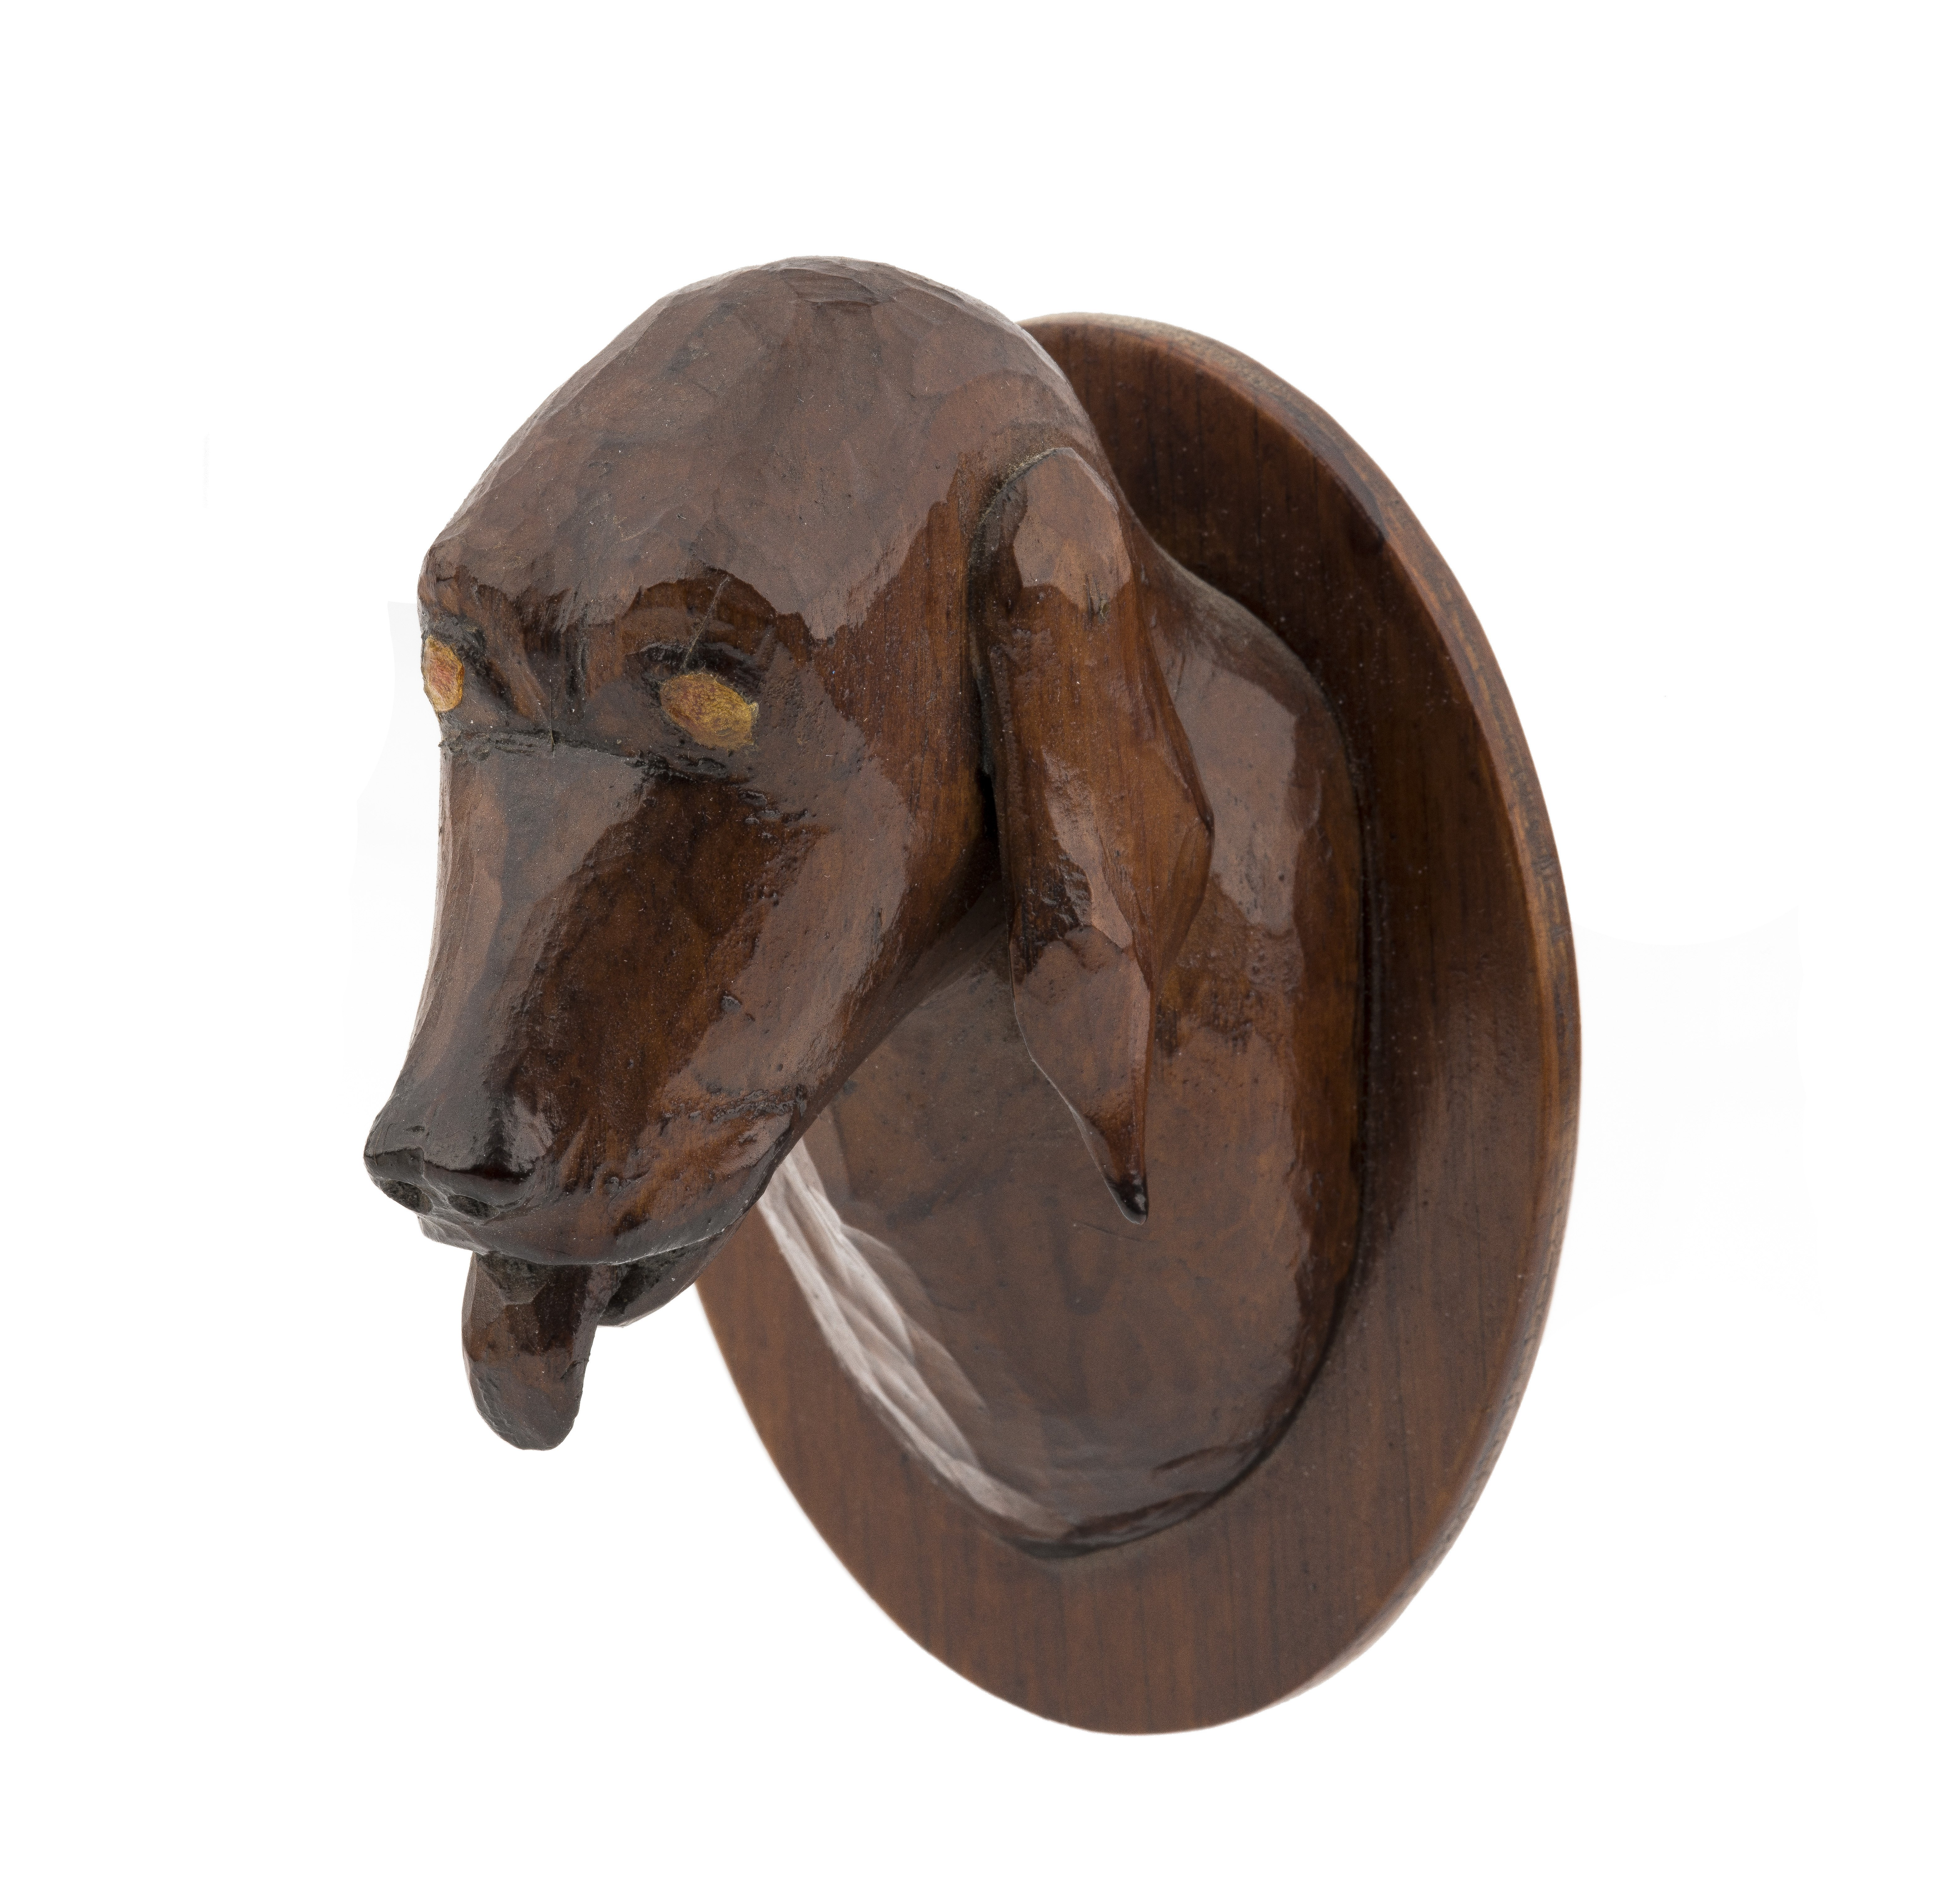 A Vintage Wooden Carved Folk Art Carved Hound Dog  Head